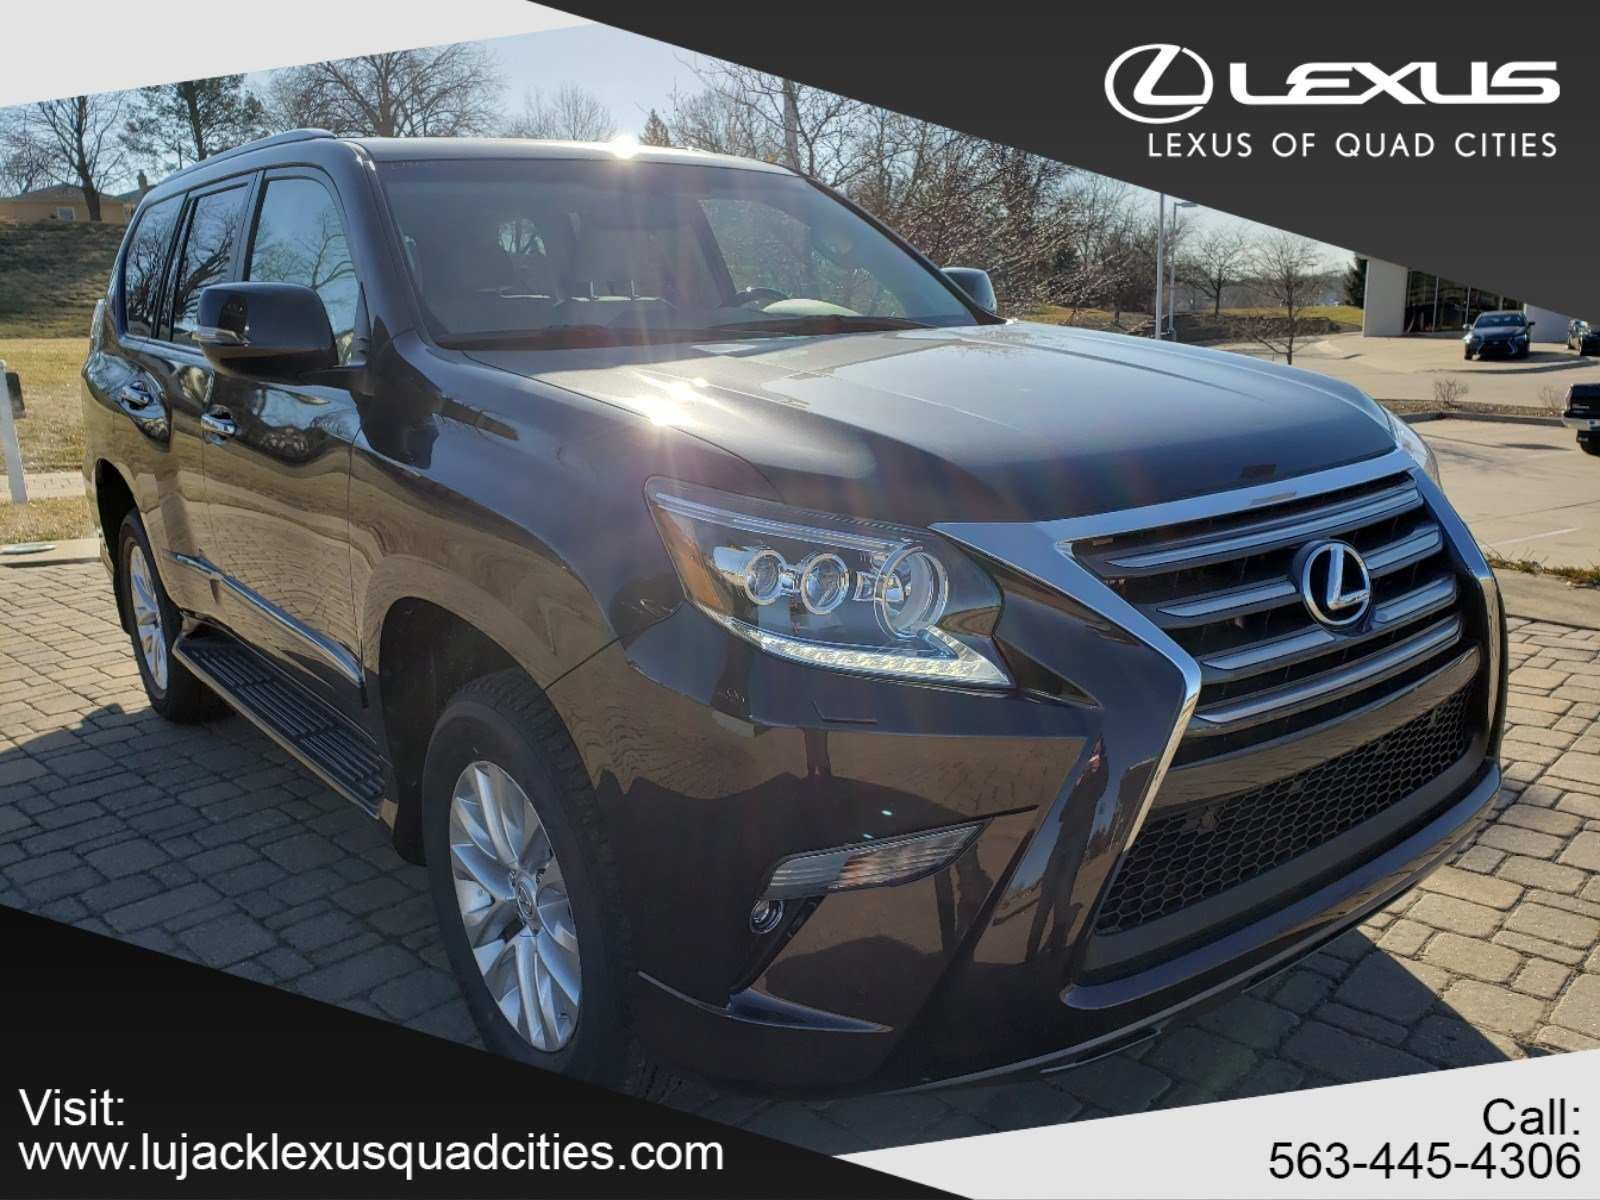 90 New 2019 Lexus Gx 460 Review with 2019 Lexus Gx 460